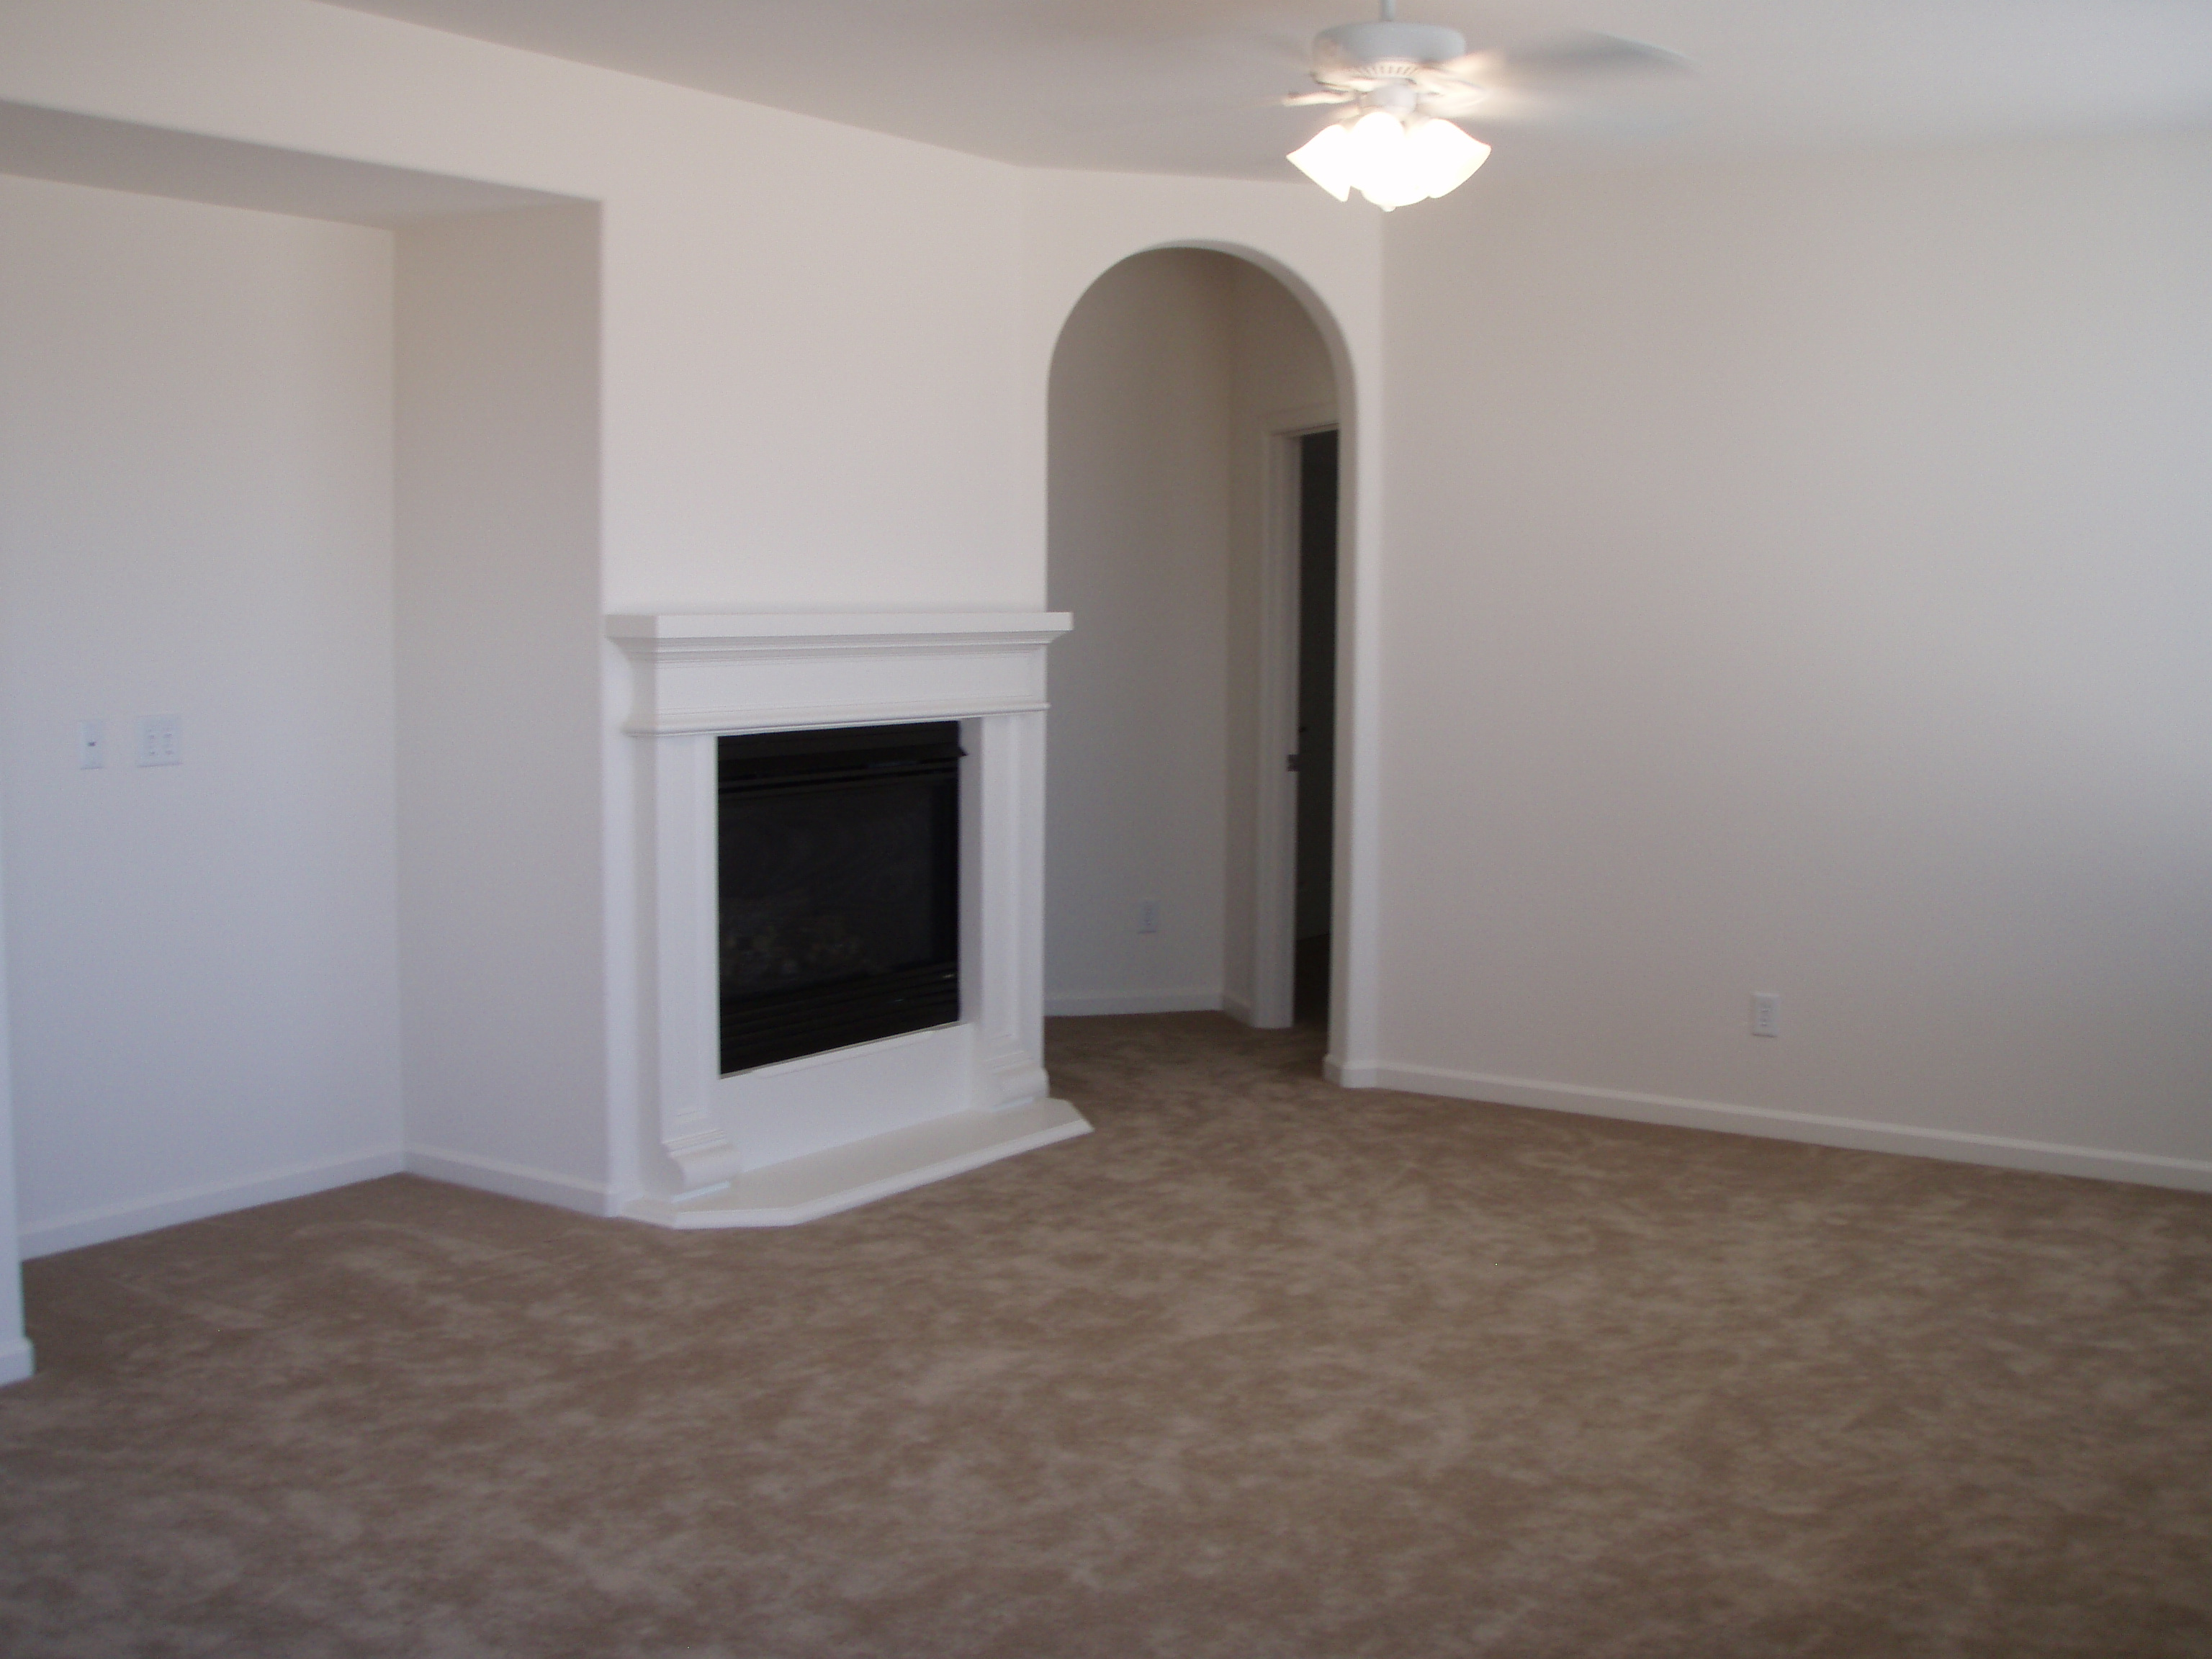 Fireplace family room.JPG